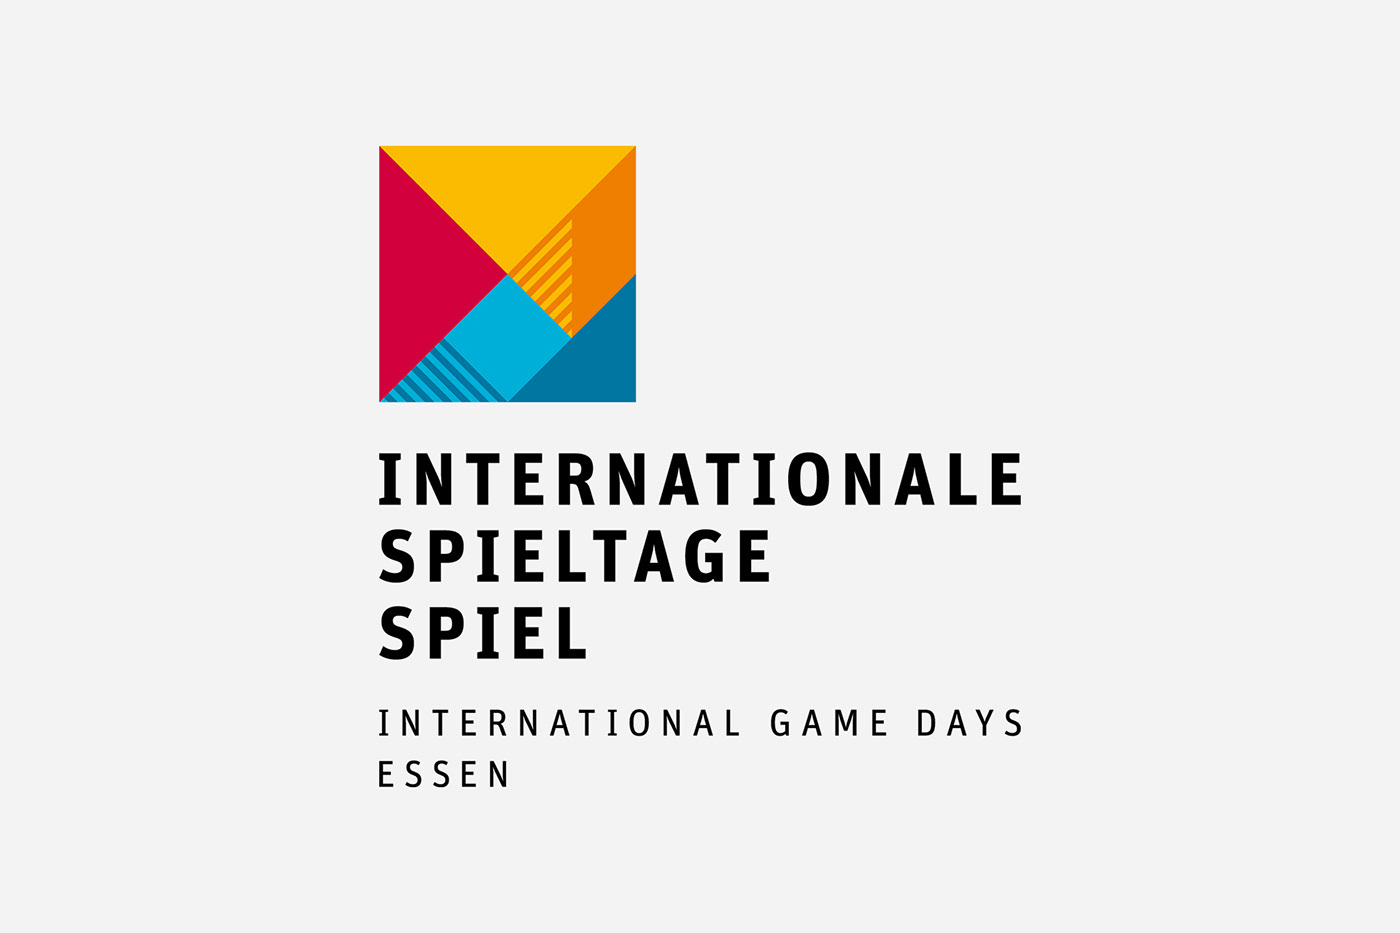 Internationale Spieltage Spiel